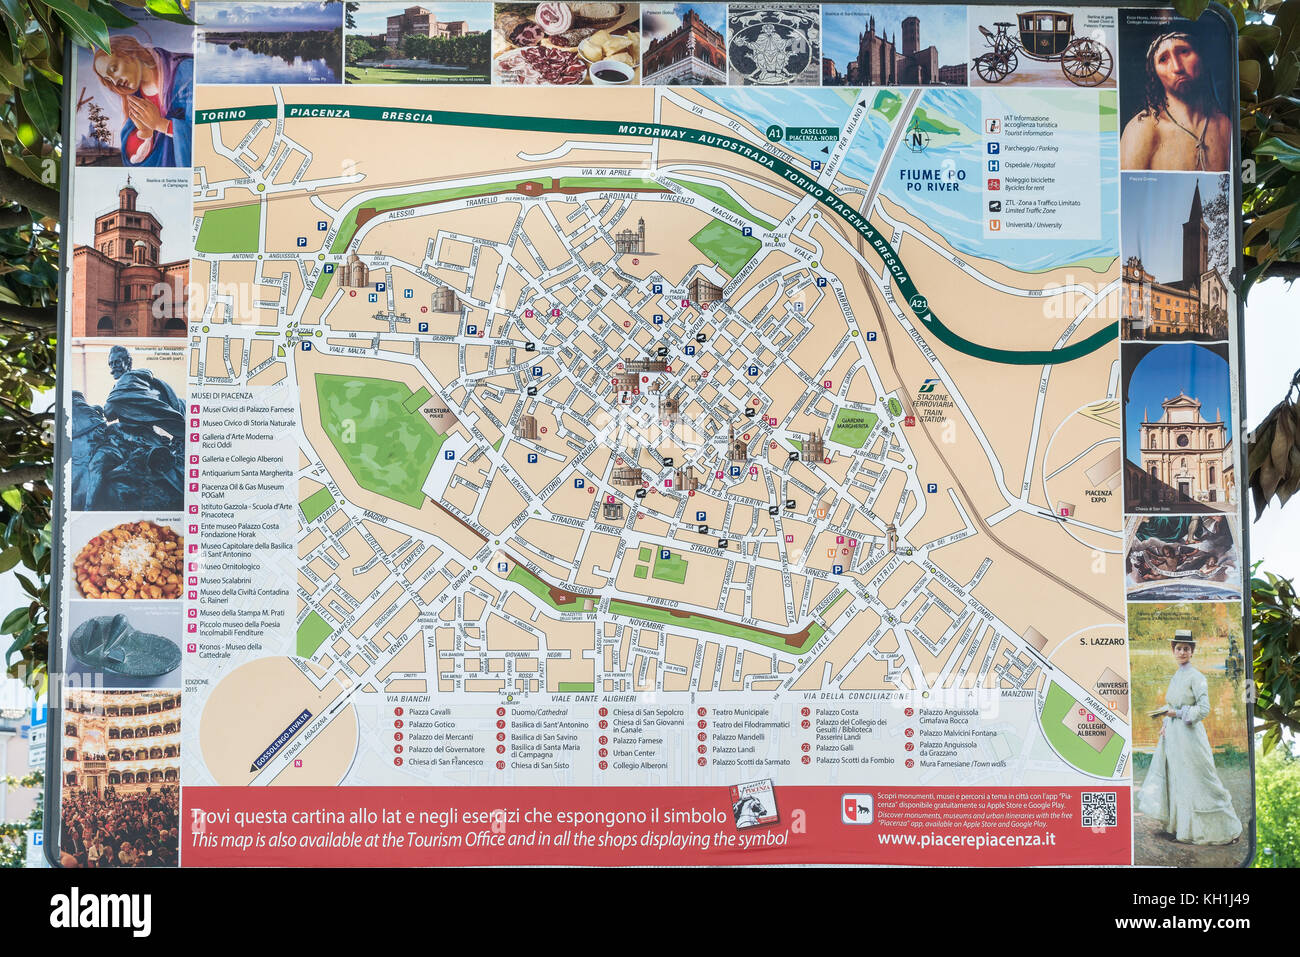 map Maps Pinterest Italy and City